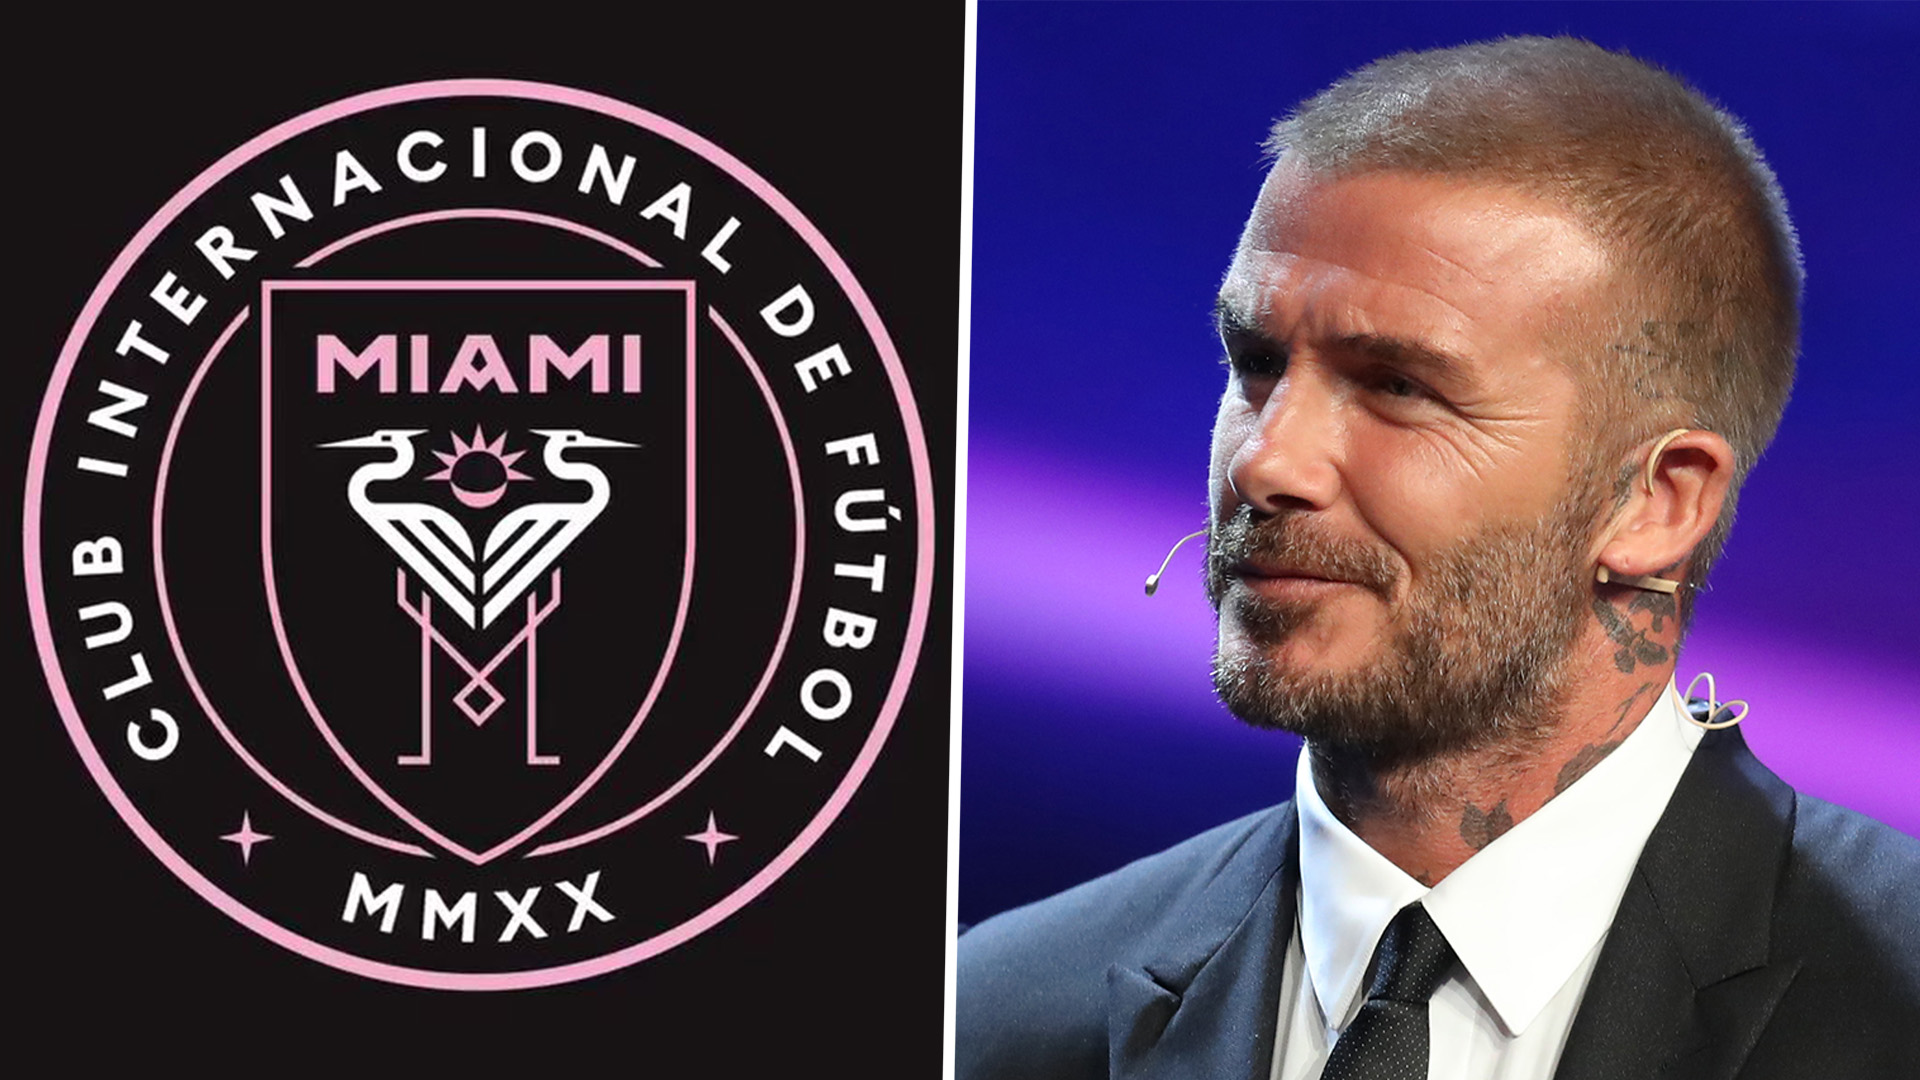 David Beckham's new MLS team will be called Inter Miami